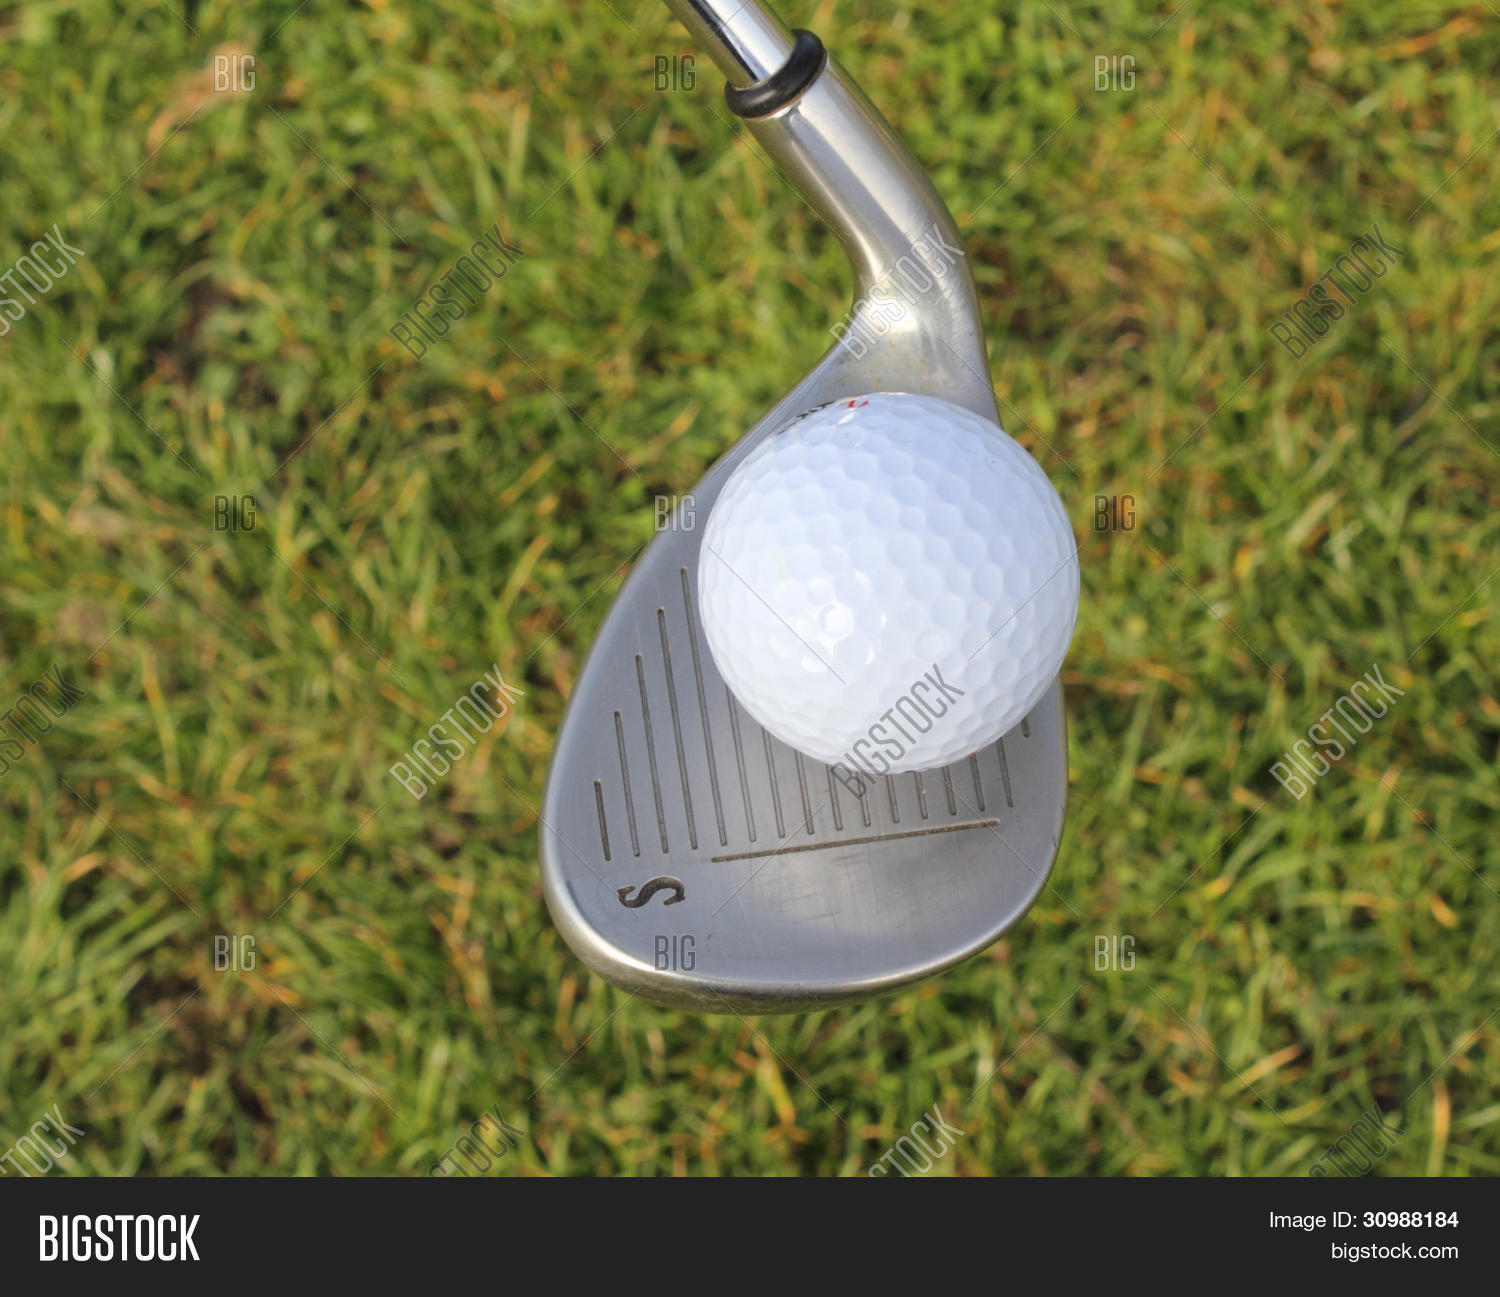 achieve,achievement,action,active,activity,aim,aiming,background,balance,ball,beautiful,begin,bet,birdie,bright,buggy,cart,challenge,close,club,compete,competition,competitive,concept,conceptual,country,course,cup,cut,day,design,detail,dimples,divot,drive,driven,driver,eagle,exercise,expense,expensive,fairway,fast,field,fit,fitness,flag,follw,fore,form,four,fourball,friendly,frustrate,frustrating,frustration,fun,gamble,game,golf,golfball,golfcourse,golfer,golfing,grass,green,greenery,grooves,group,handicap,hard,hit,hobby,hole,holiday,horizon,inches,invitation,invitational,iron,lawn,layout,leisure,life,lifestyle,links,long,natural,nature,outdoors,par,peg,pitch,pitching,play,player,playing,practice,putt,putter,ready,recreation,relax,relaxation,relaxed,resort,retire,retirement,rough,round,sandwedge,scenery,scenic,score,scorecard,senior,shadow,skill,speed,sports,start,success,successful,summer,sweet,swing,tee,vacation,wager,walk,wedge,white,wood